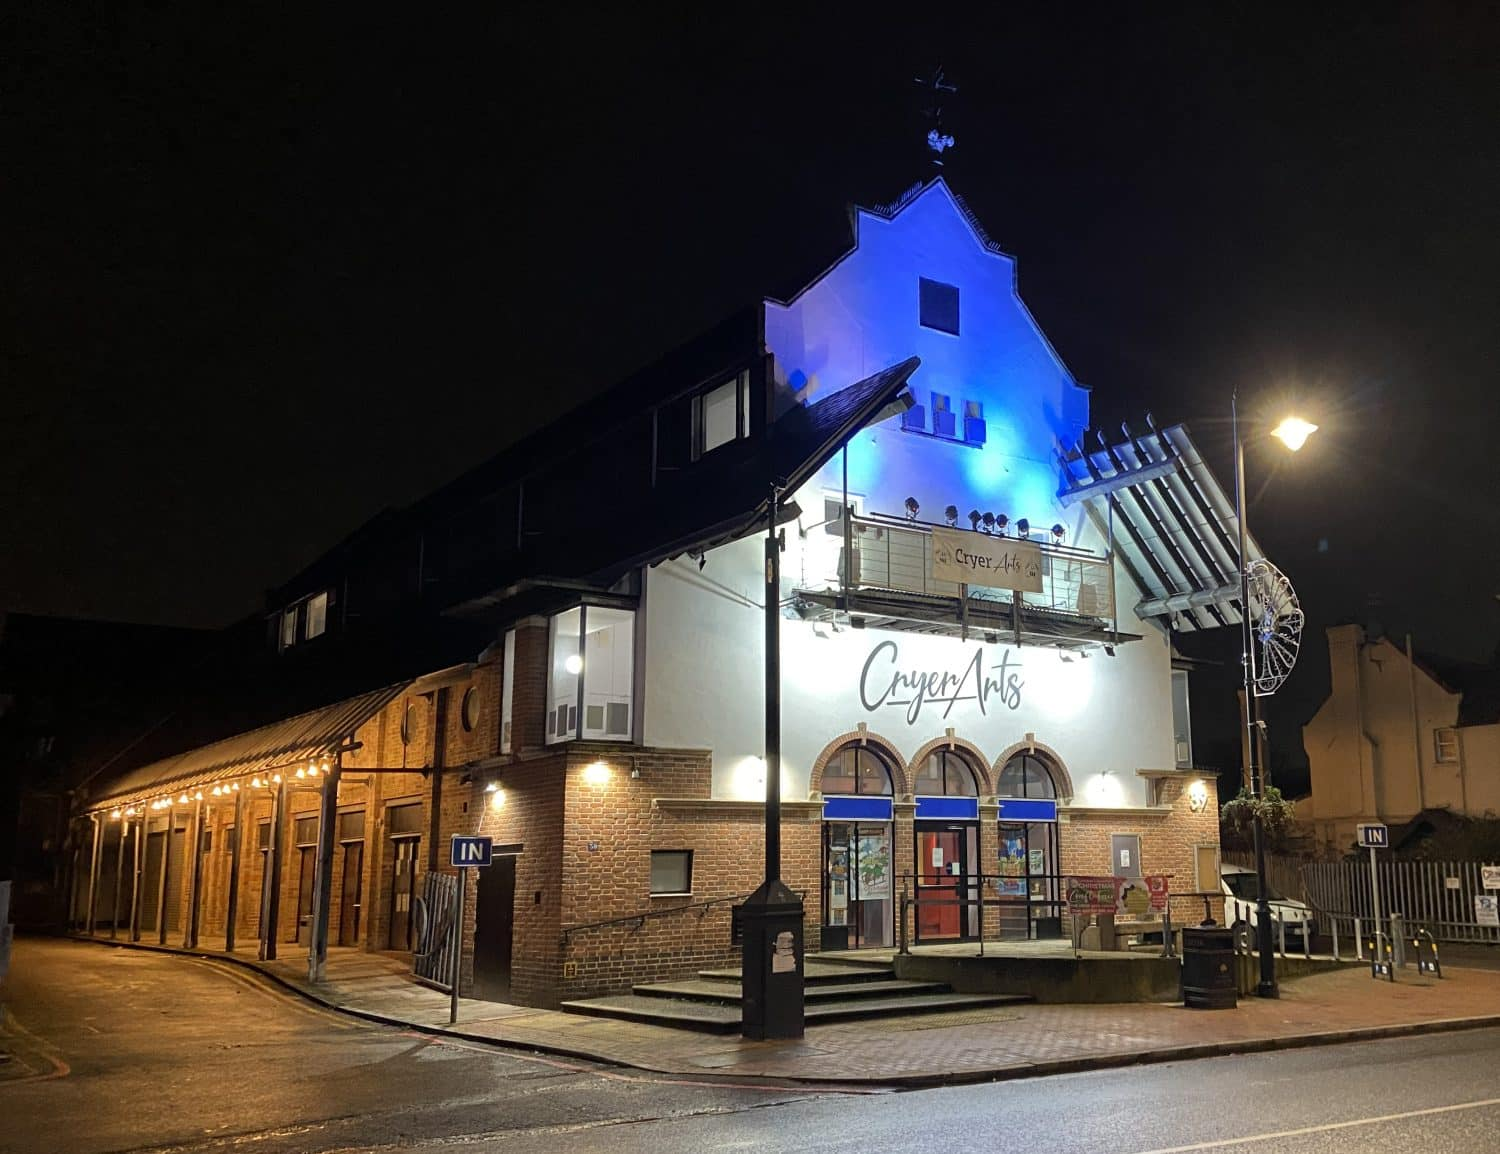 Gala celebrates the official opening of Cryer Arts Centre